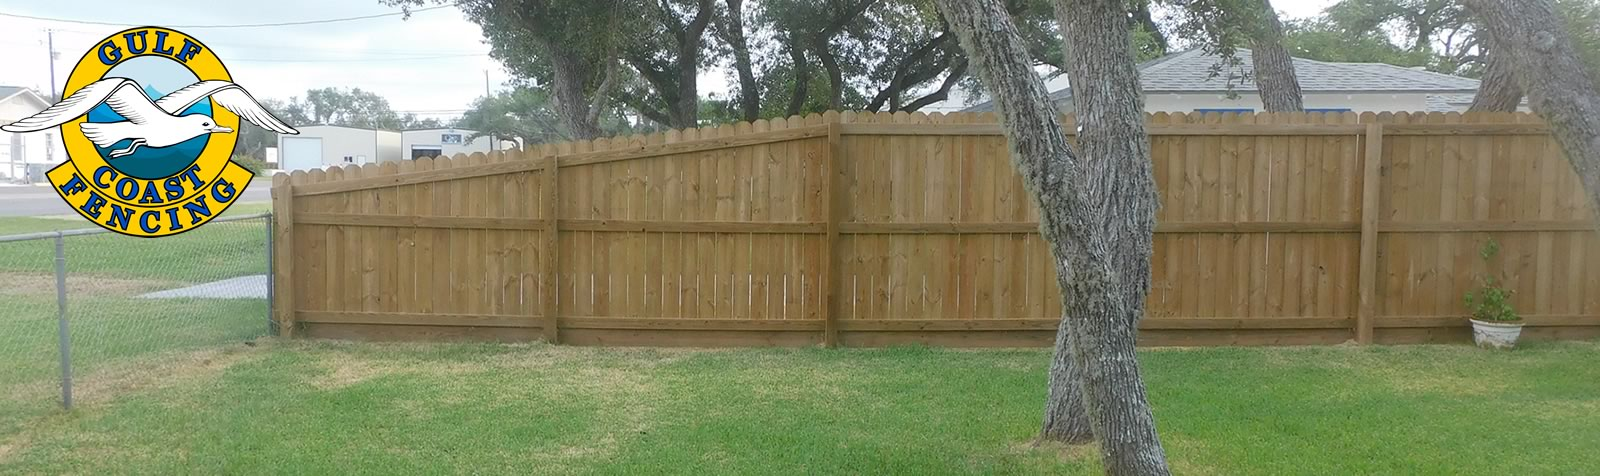 Privacy Fence Contractor in Rockport Texas